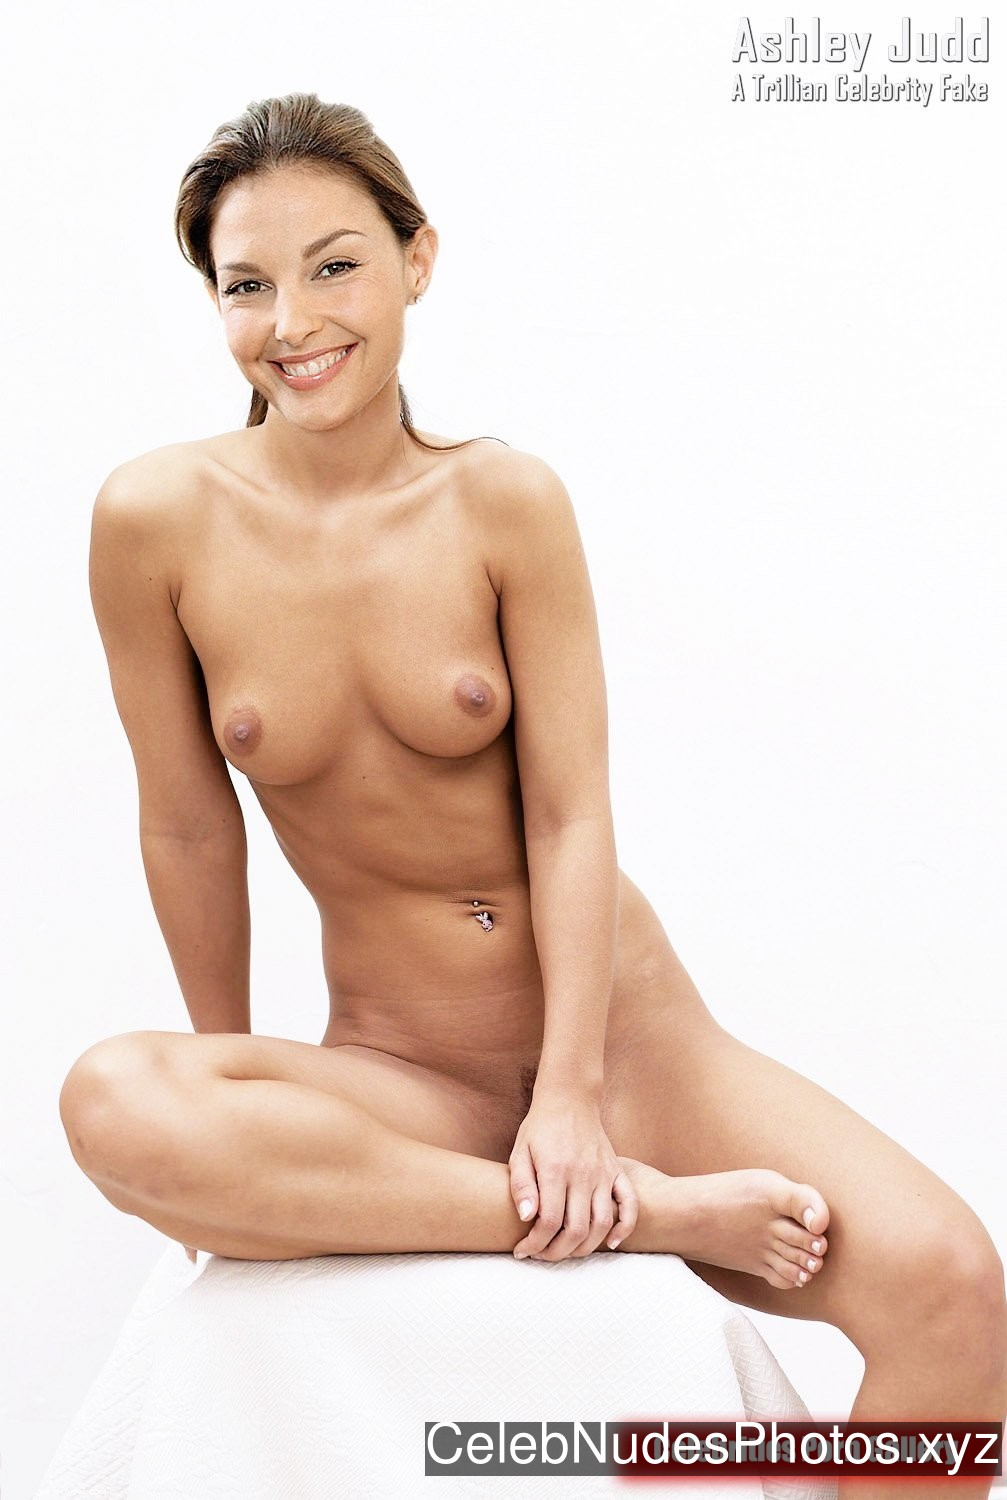 ashley judd sexy pictures